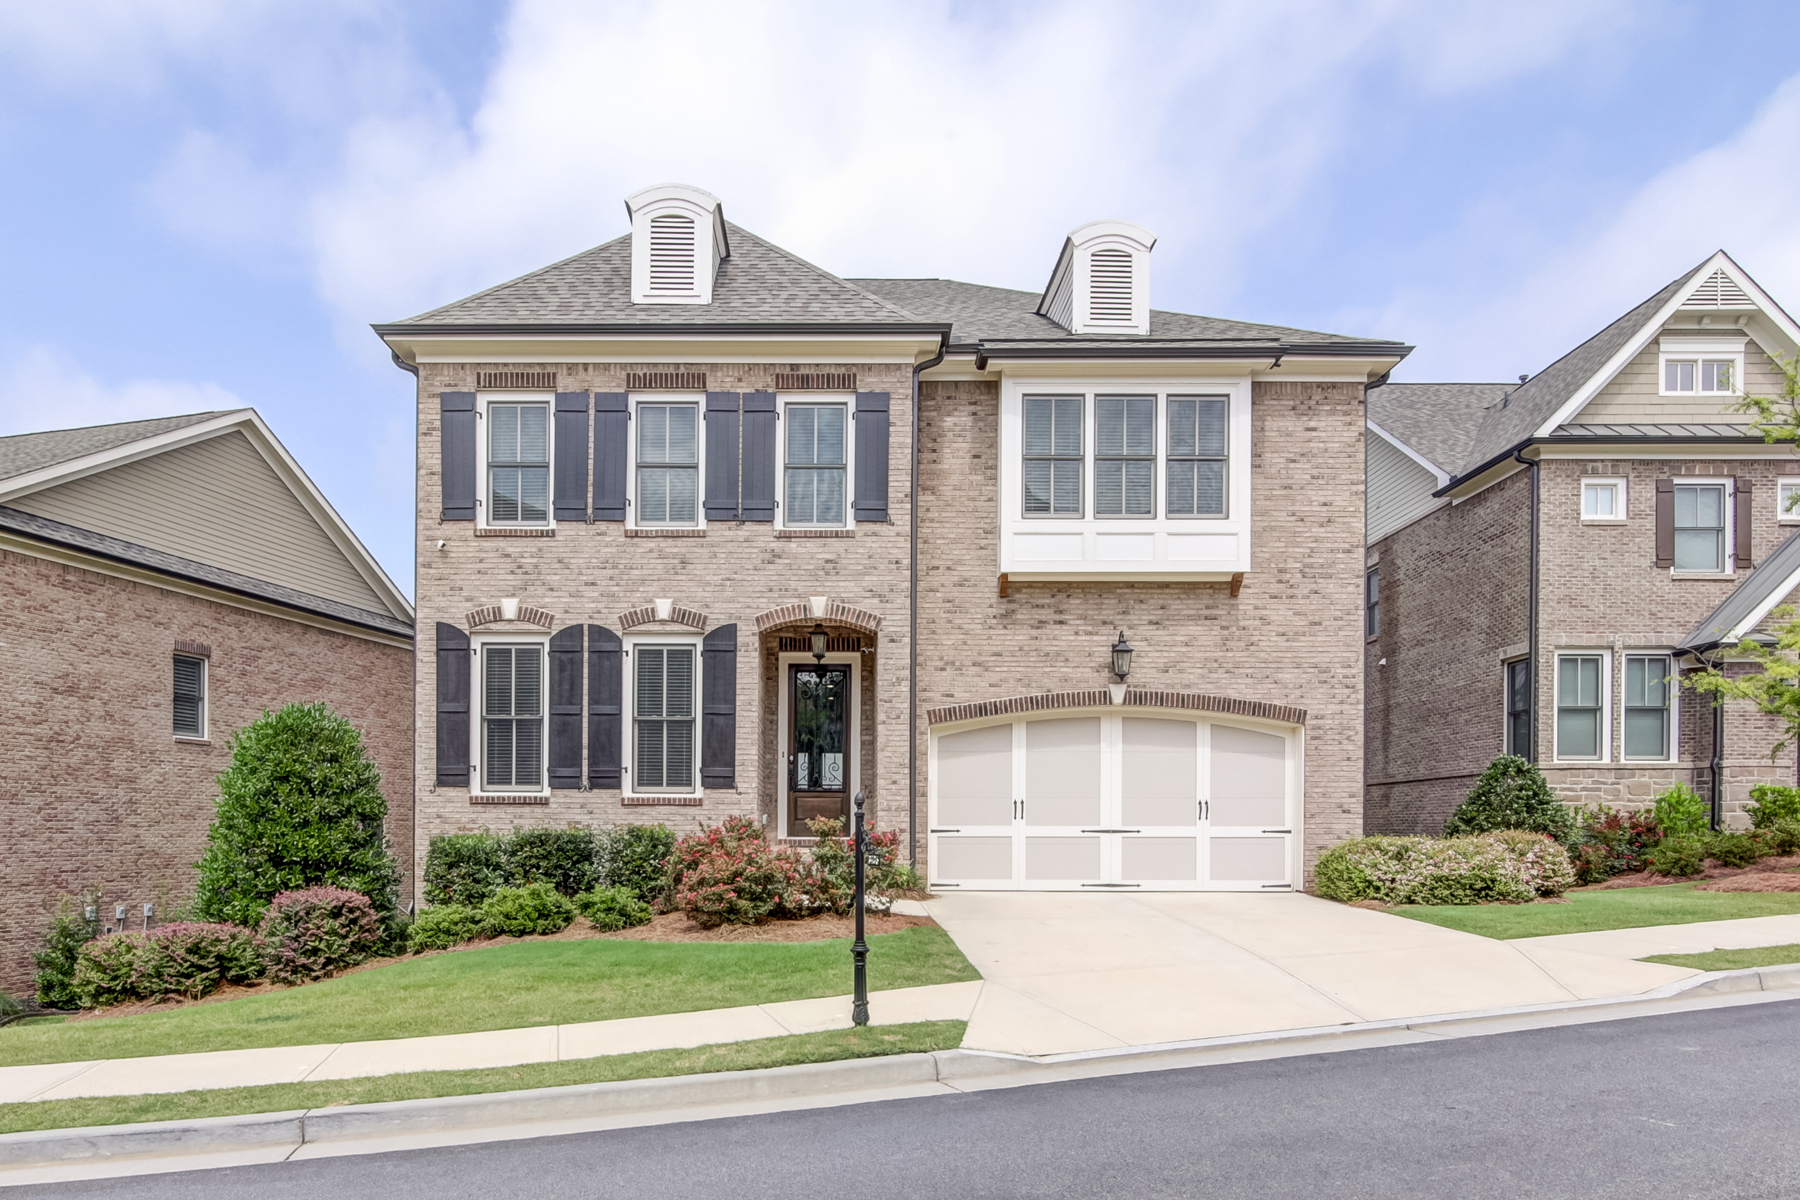 Single Family Home for Sale at Entertainer's Delight 3405 Bryerstone Circle SE Smyrna, Georgia 30080 United States